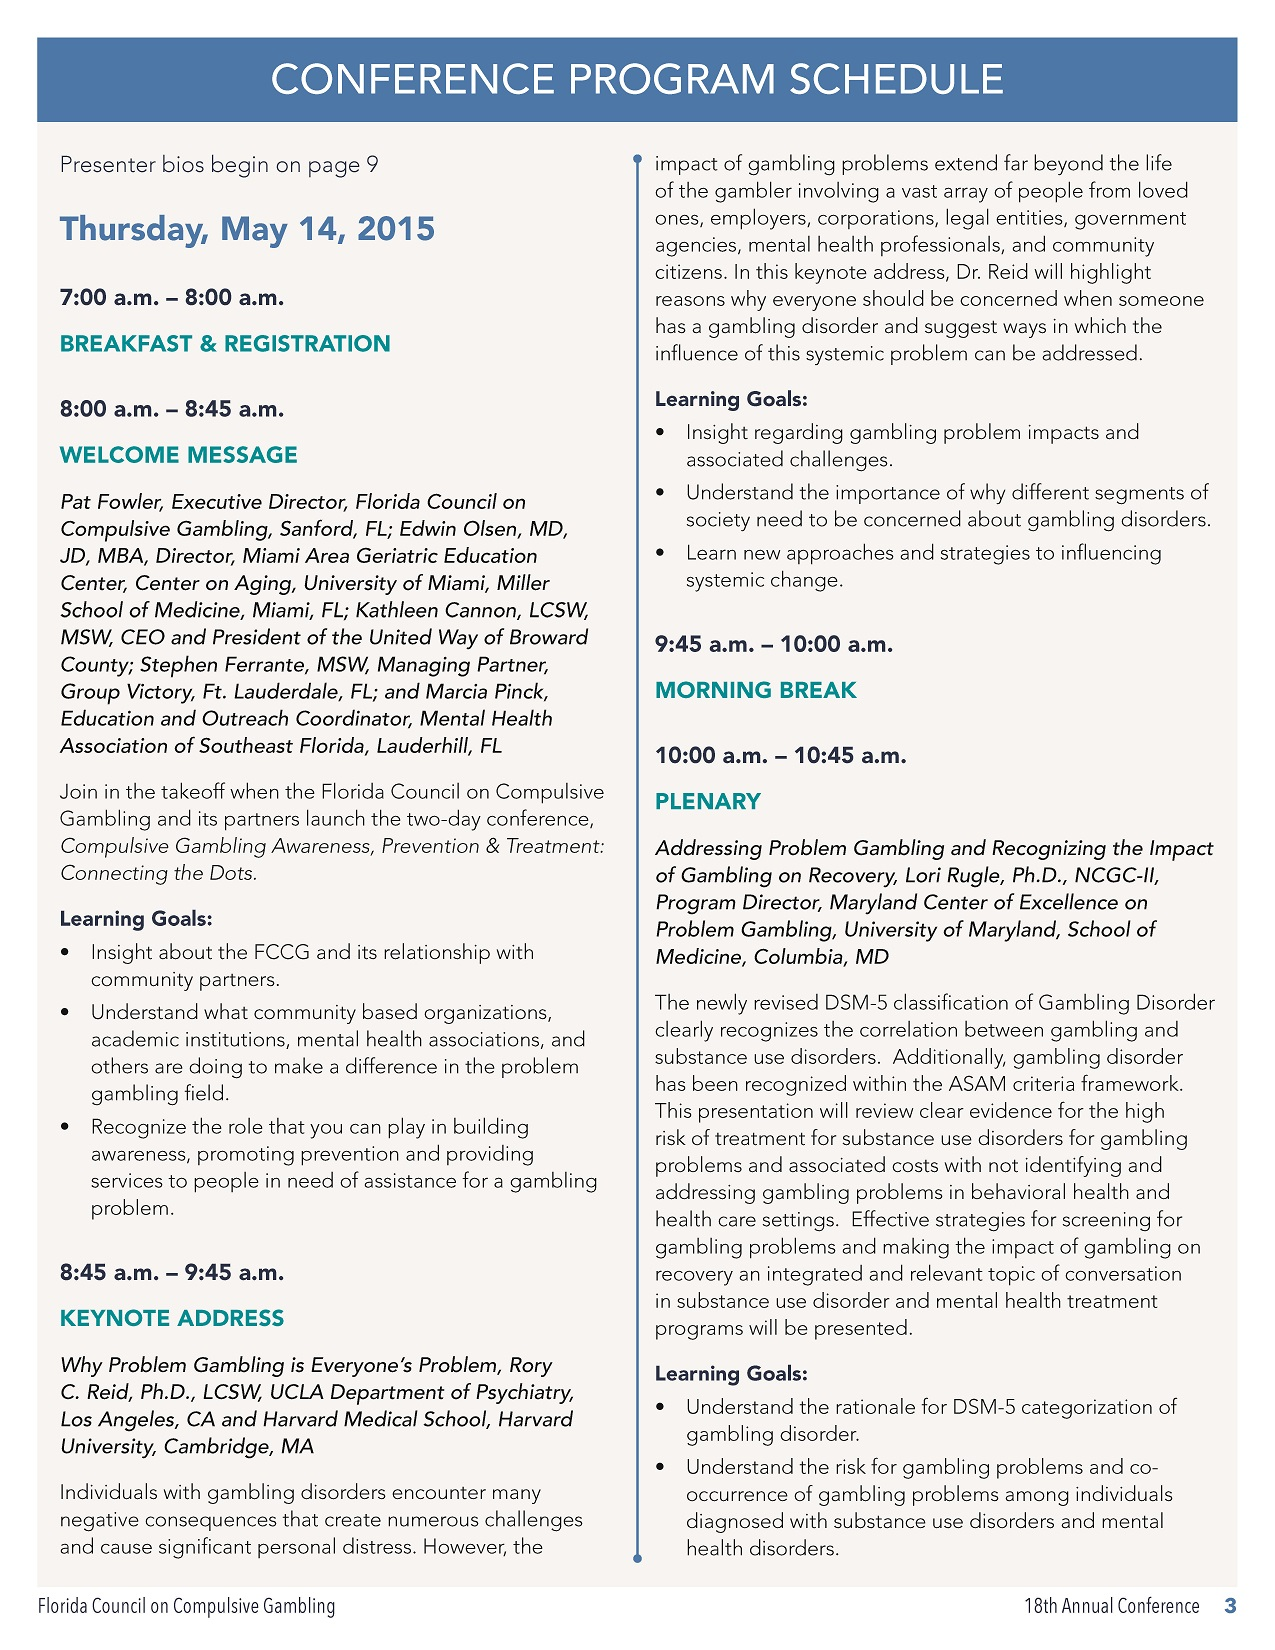 18th Annual Conference Program Schedule_Page_1